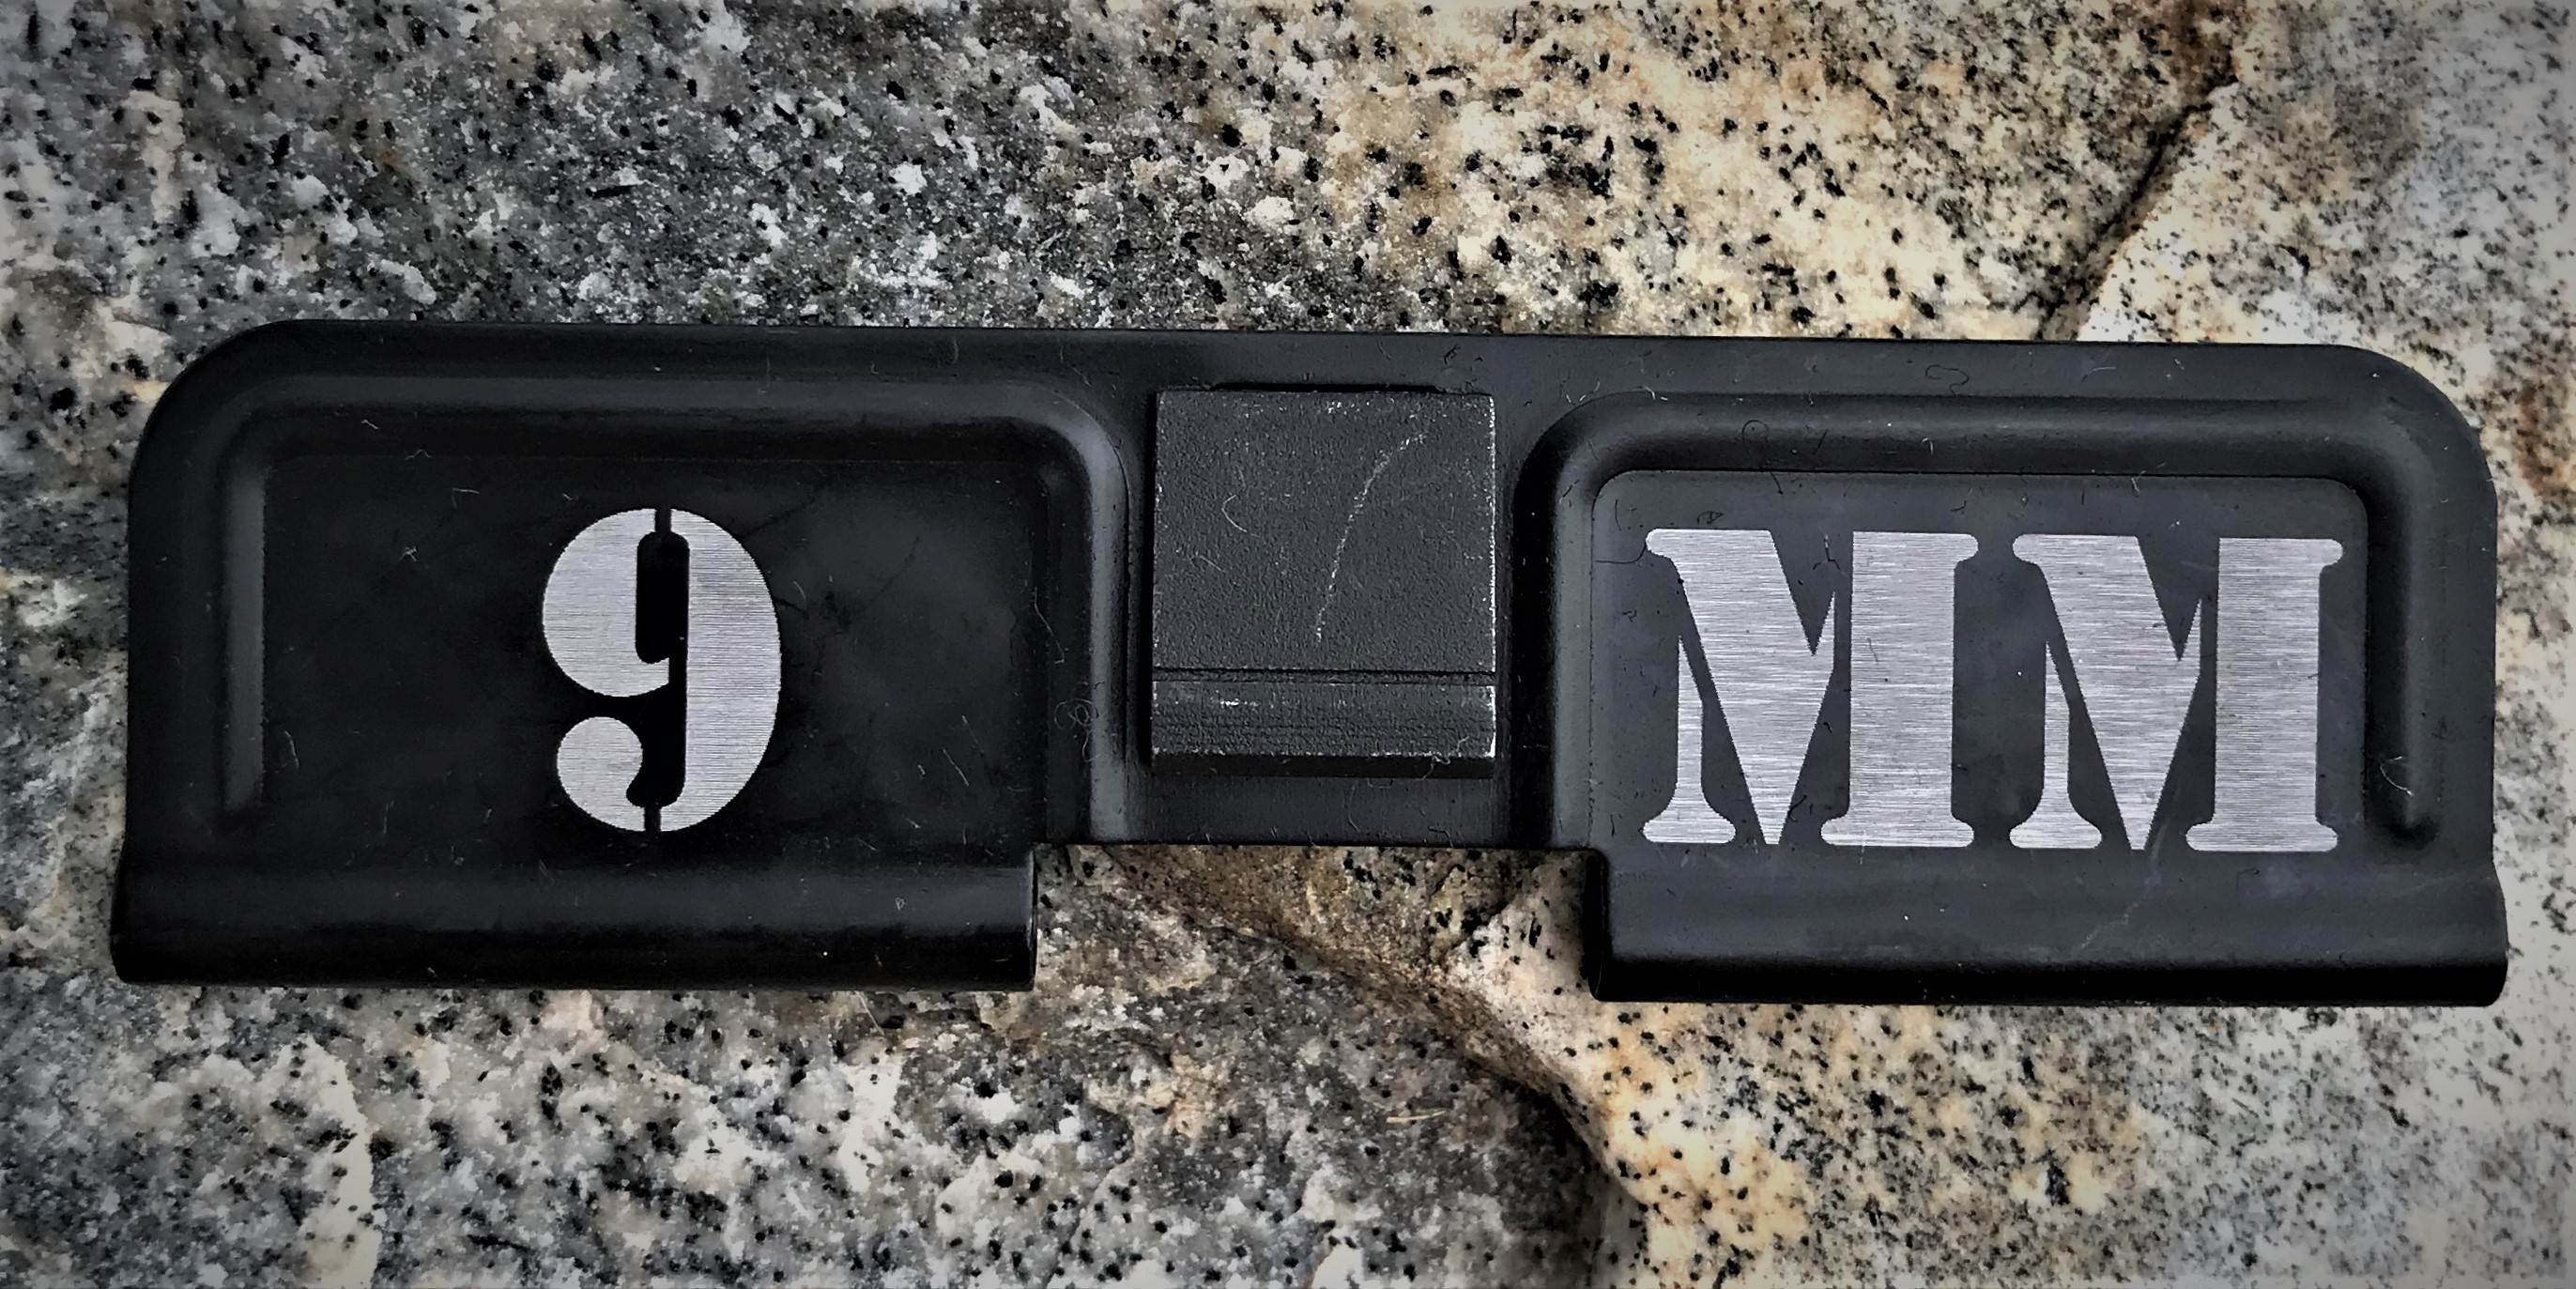 Custom AR 15 Ejection Port Cover 9mm